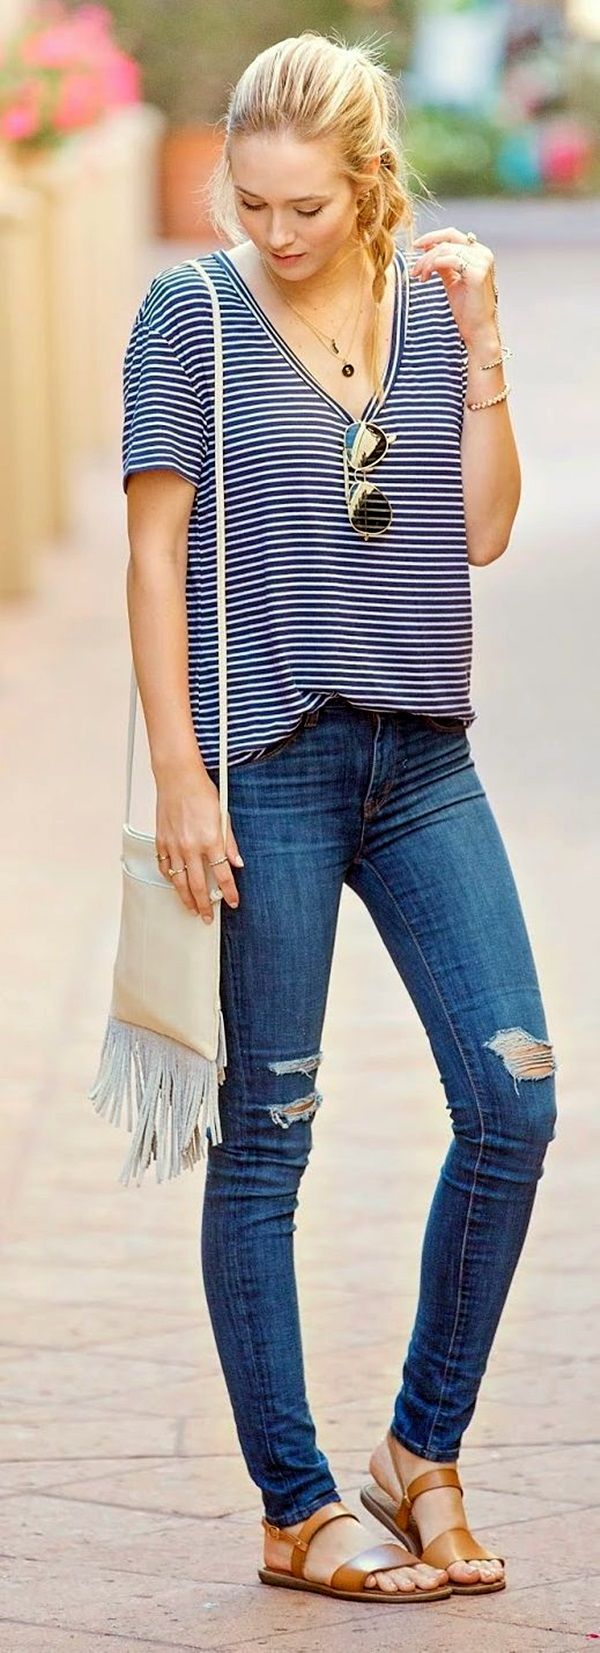 Outstanding Edgy Fashion Outfits Casual Ripped Jeans